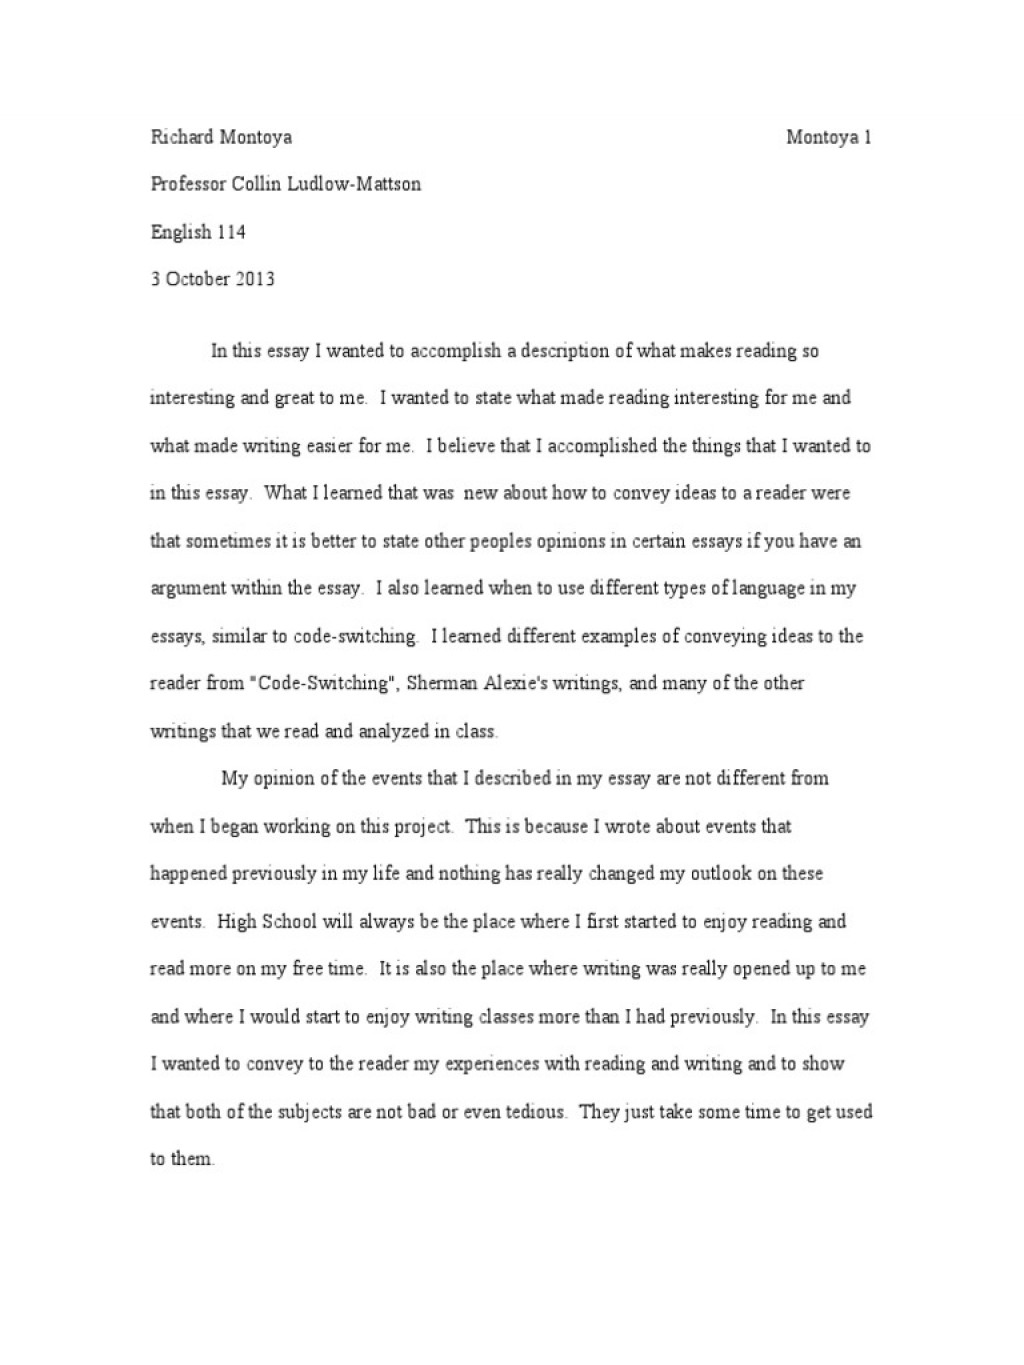 016 Essay Example Literacy Narrative Final Draft Revised Essays Homework How My Writing Has Changed Self Phenomenal Personal Examples Sample Digital Large